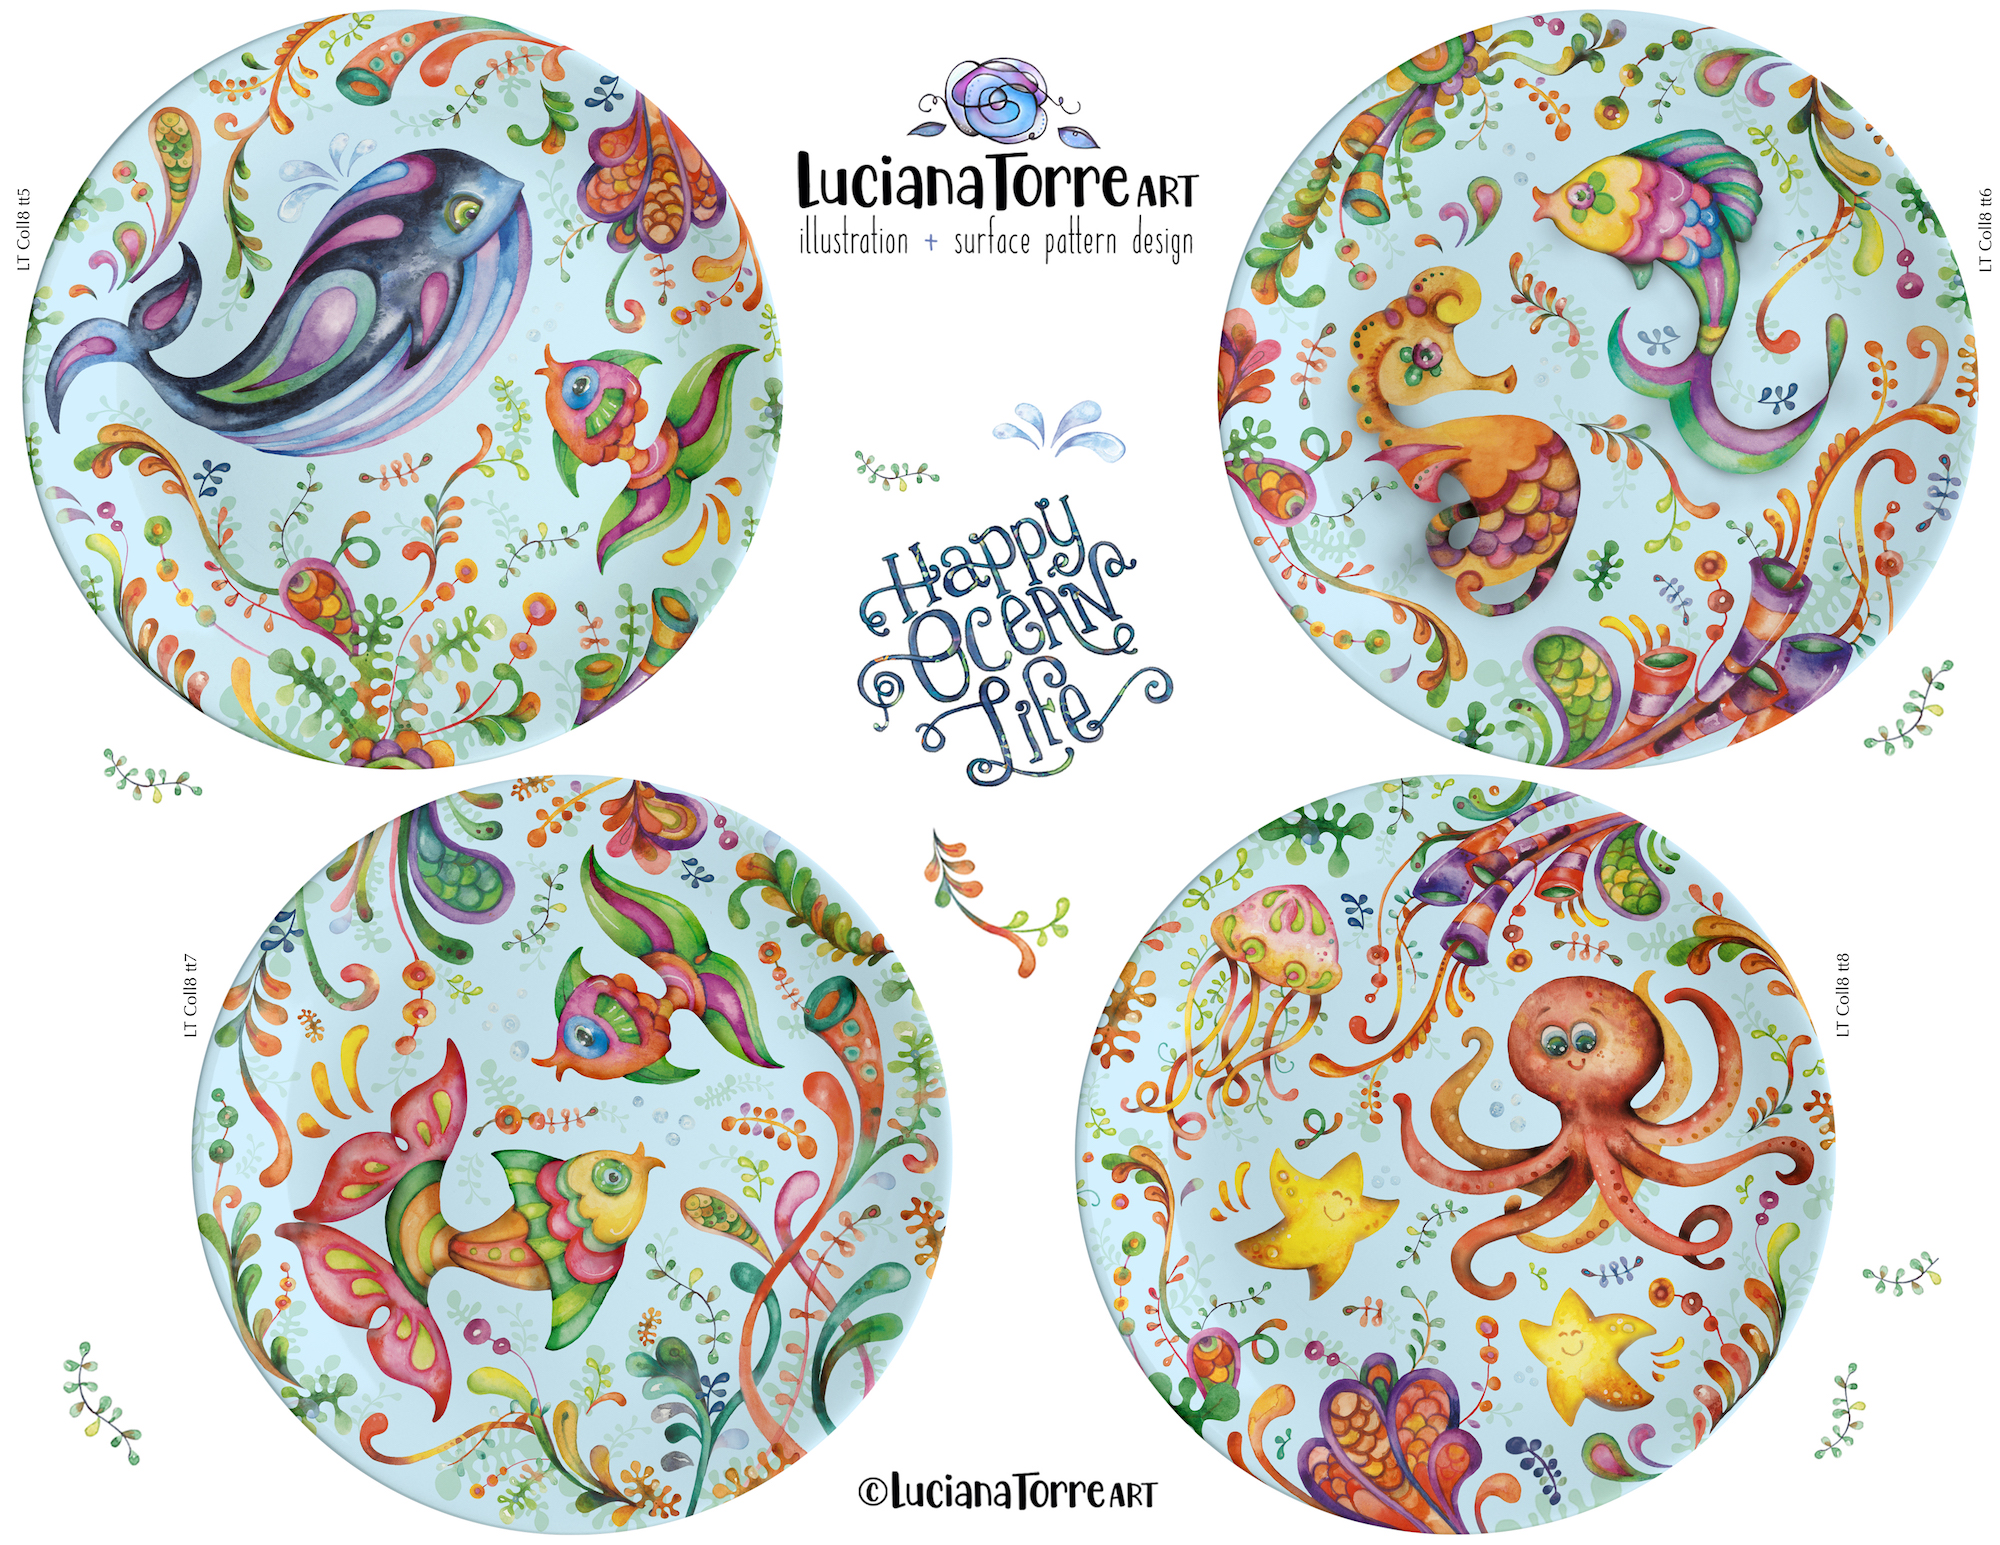 Luciana Torre Art tabletop for license